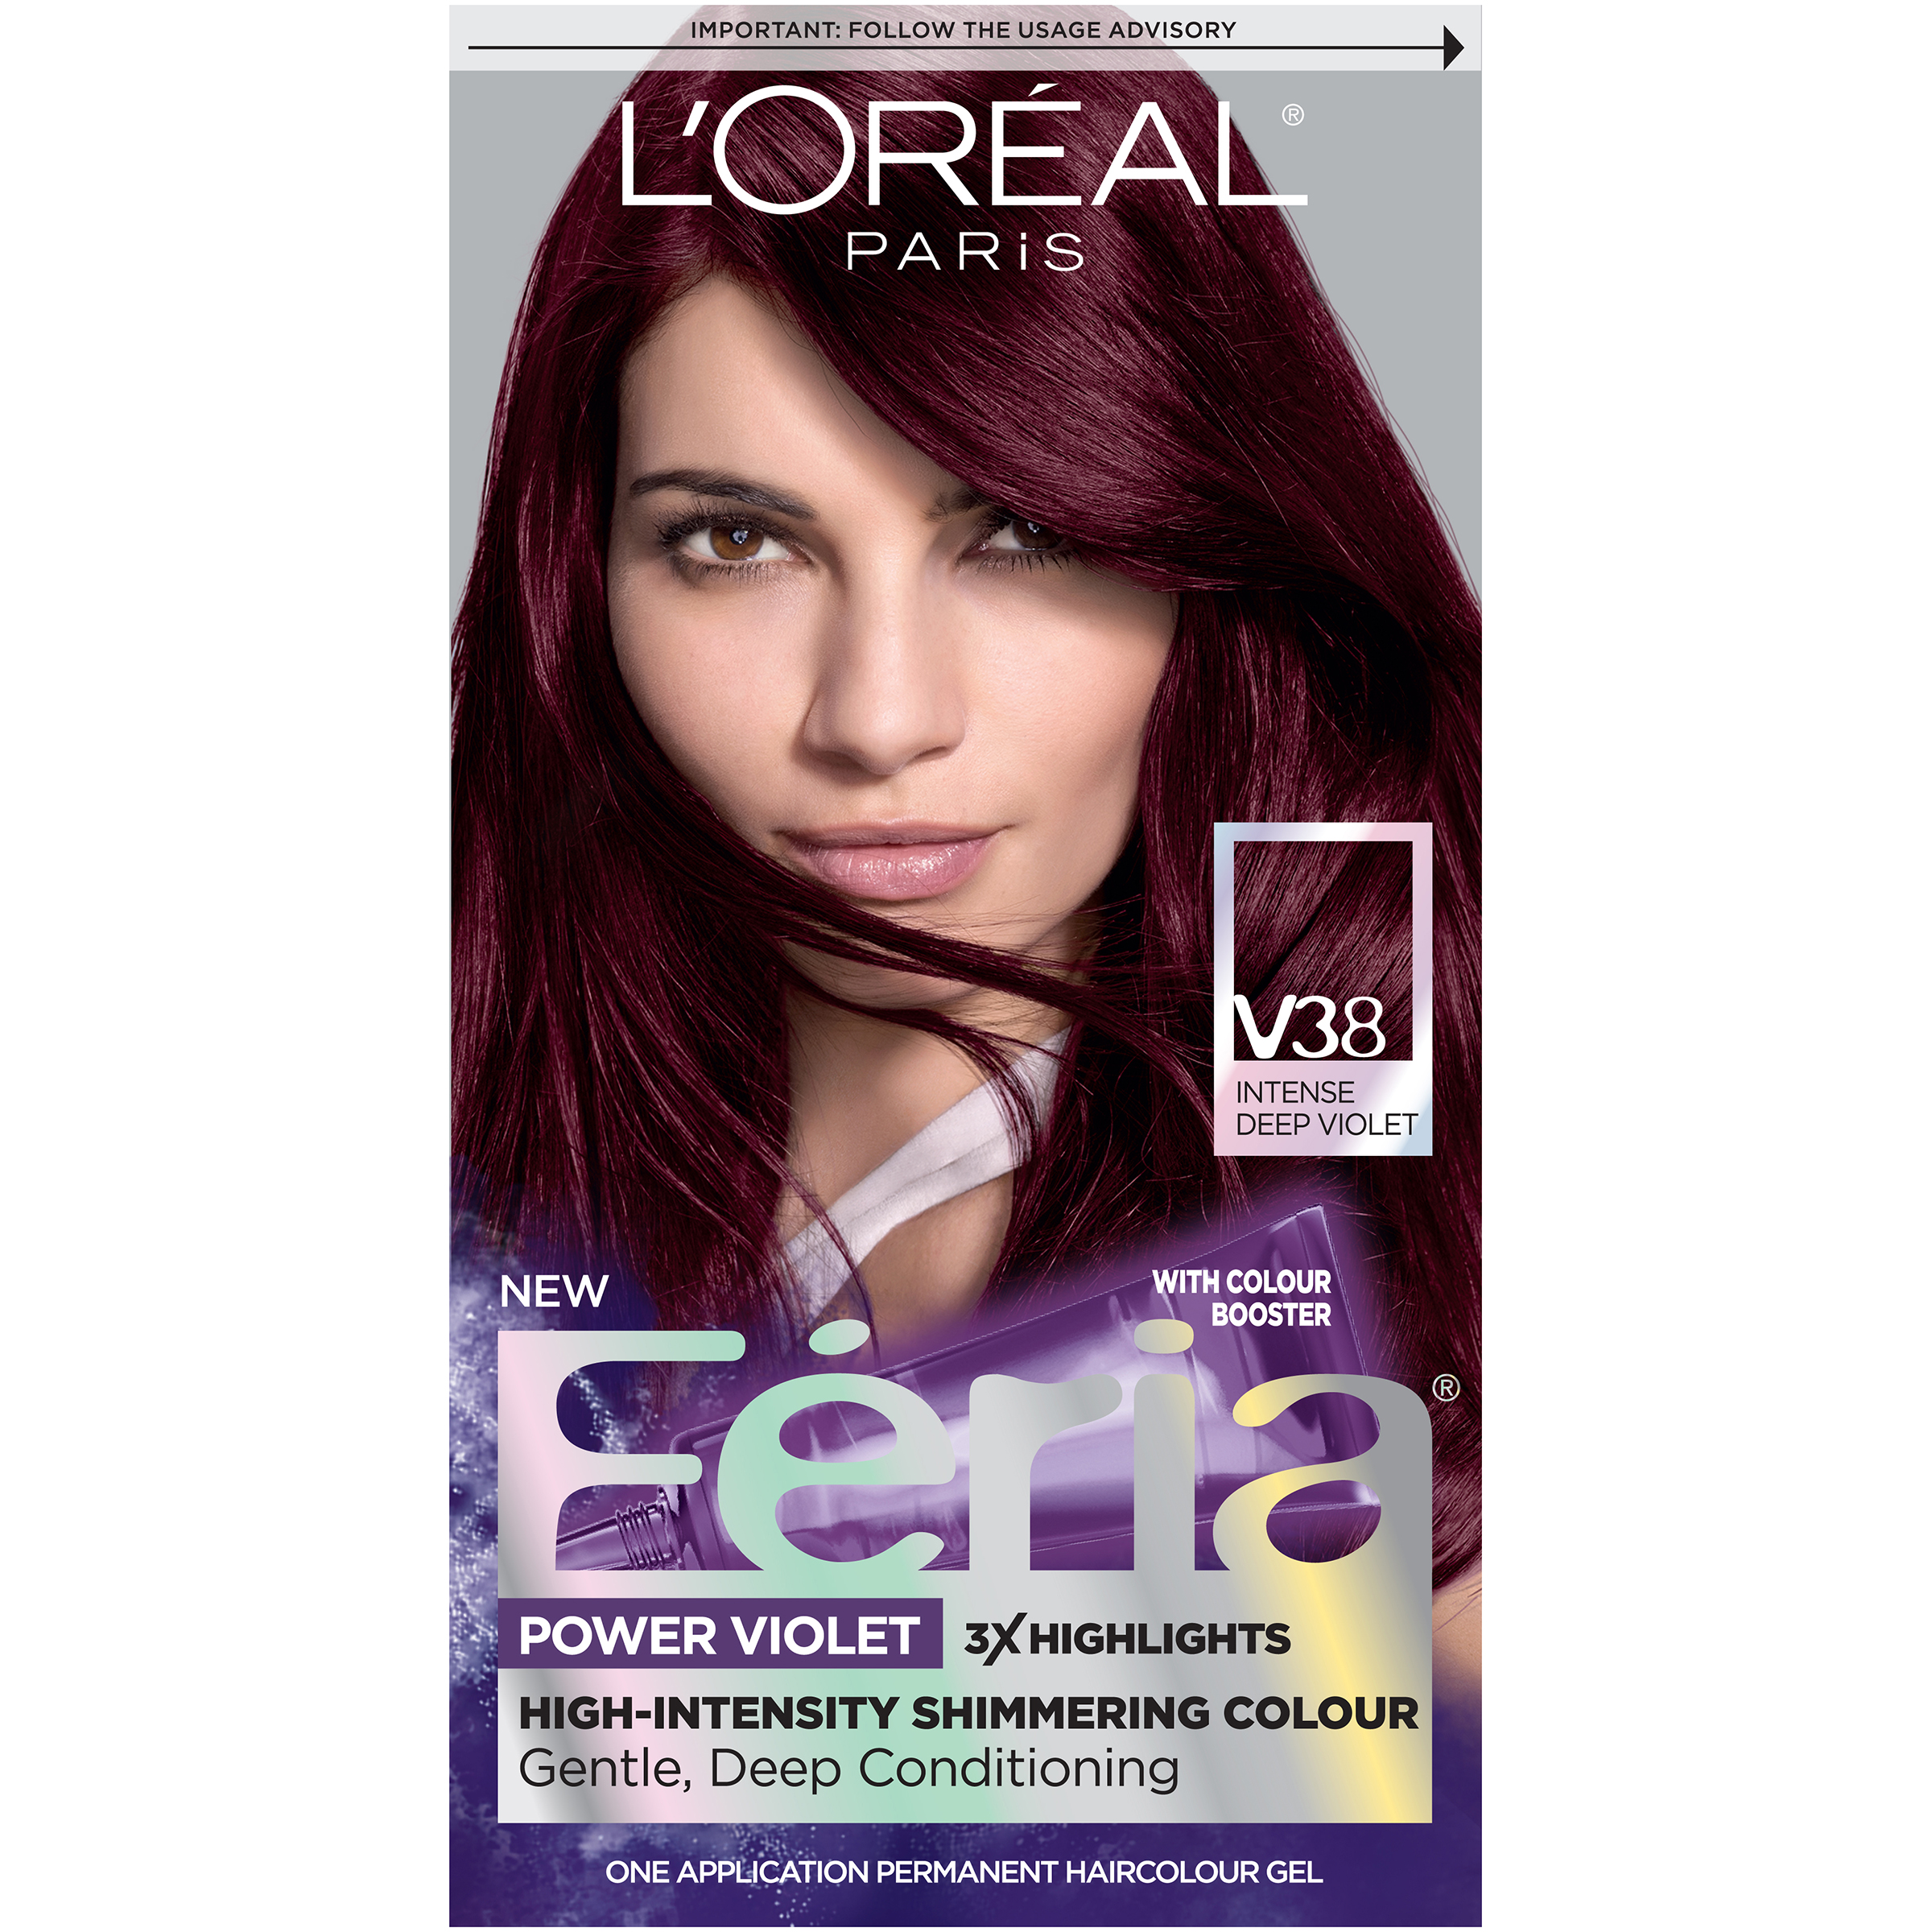 Loreal Paris Feria Hair Color V38 Intense Deep Violet Ebay